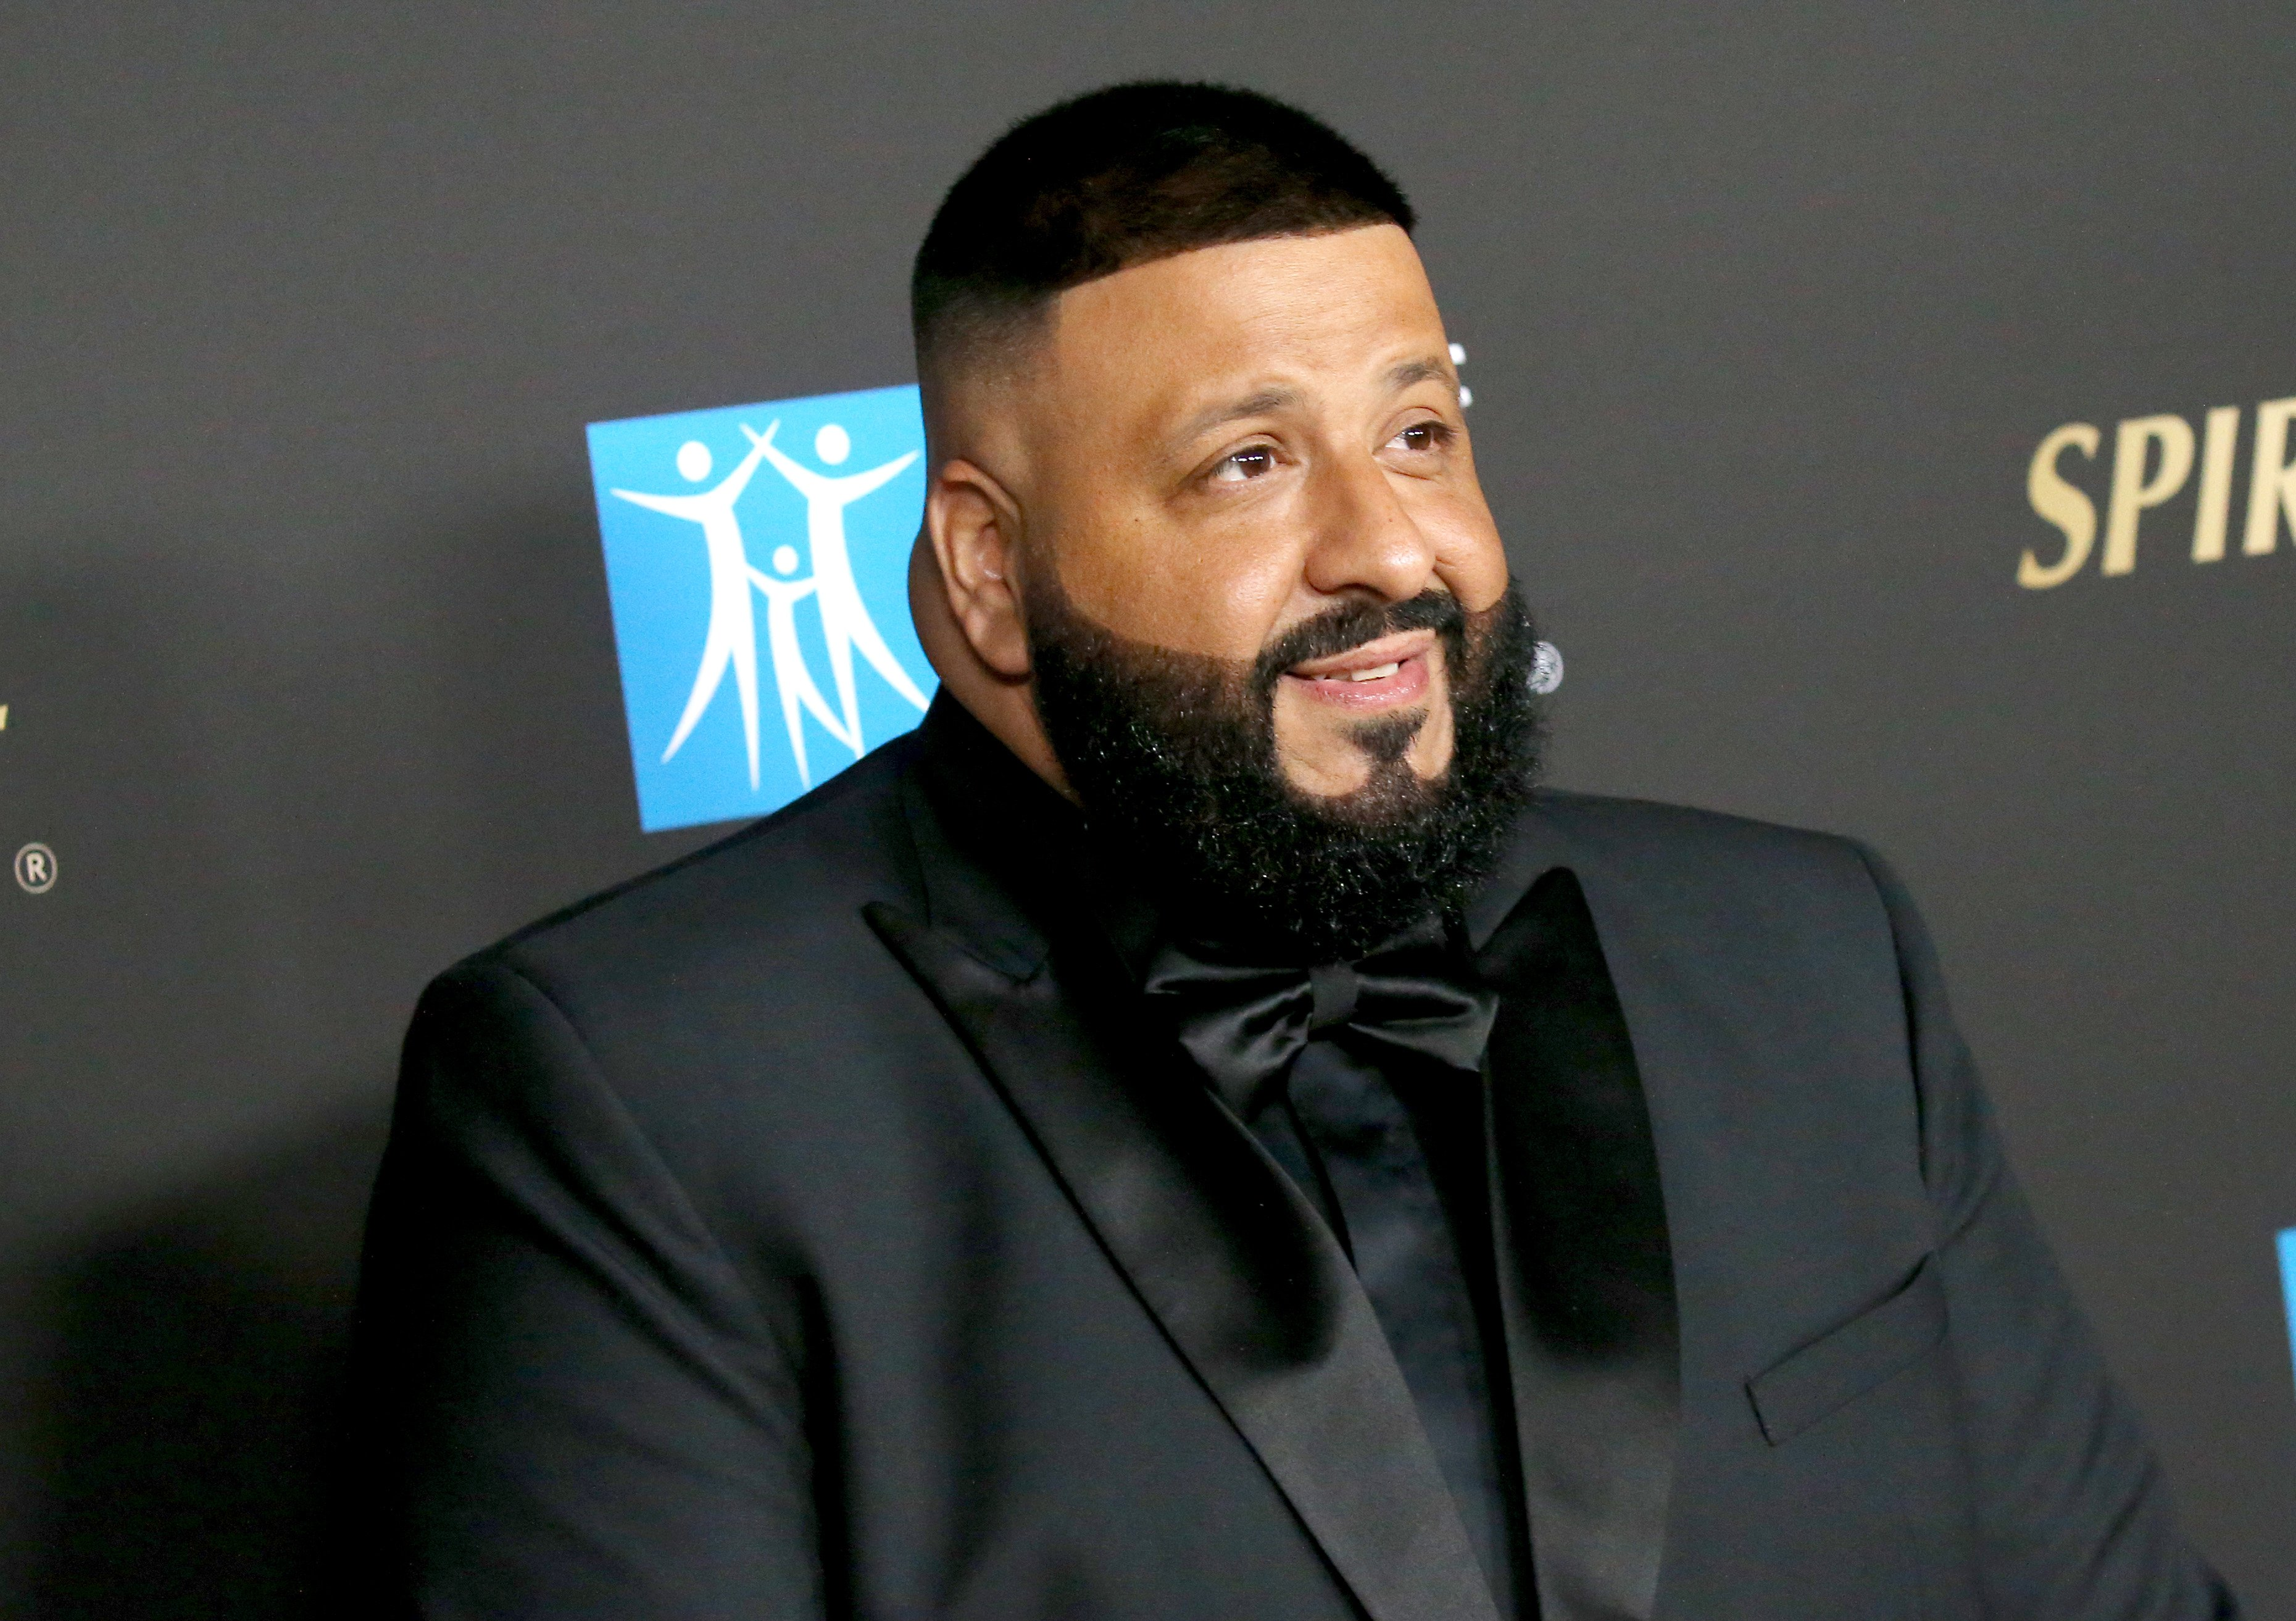 DJ Khaled at the City of Hope's Spirit of Life 2019 Gala on October 10, 2019 in Santa Monica, California. | Source: Getty Images